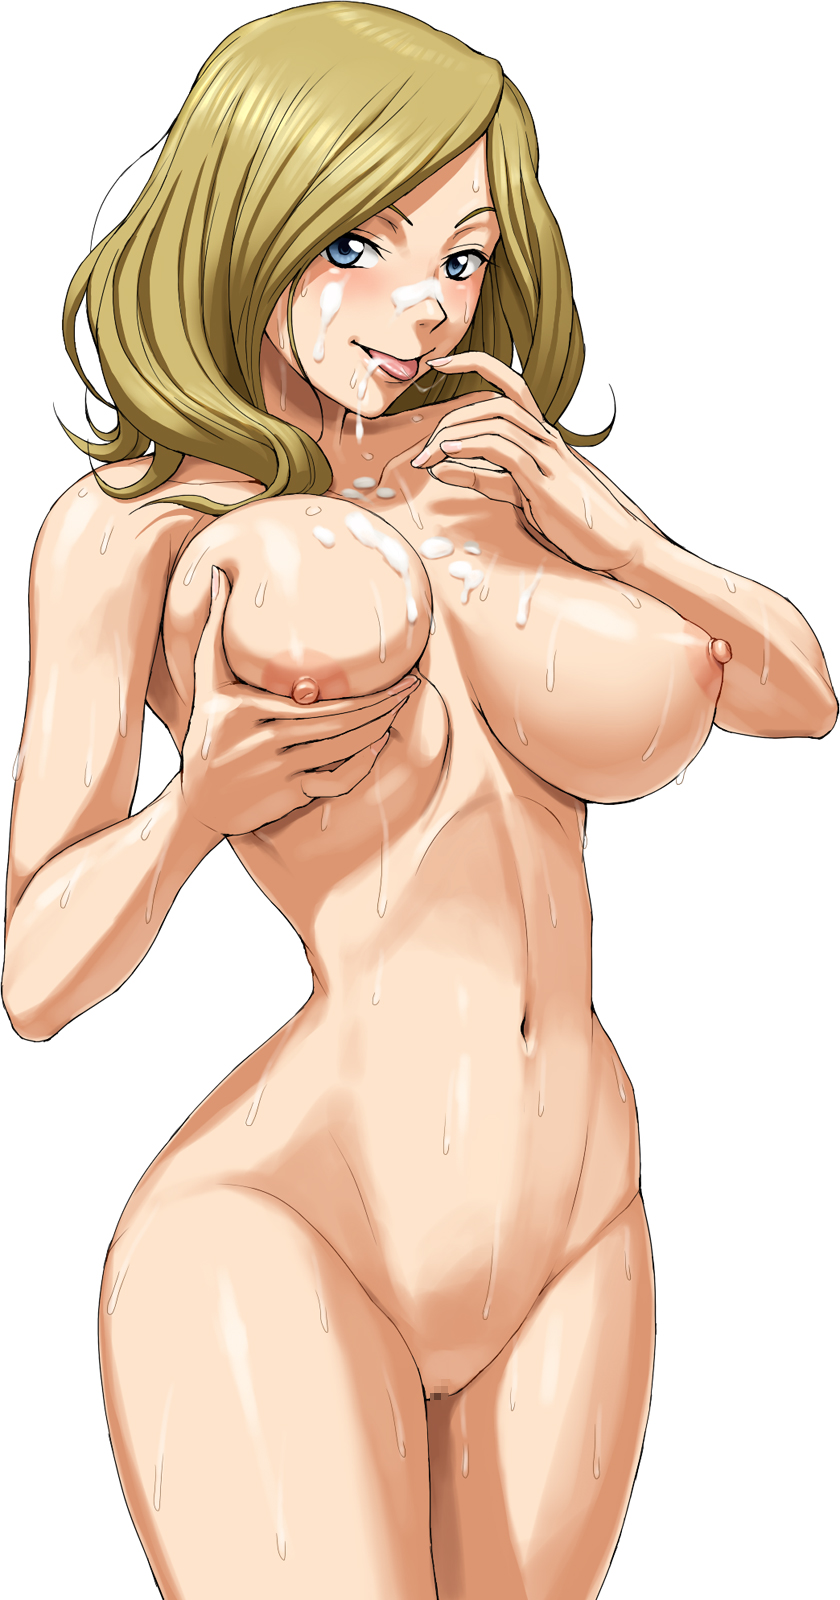 Anime woman with world's largest breasts naked nackt galleries